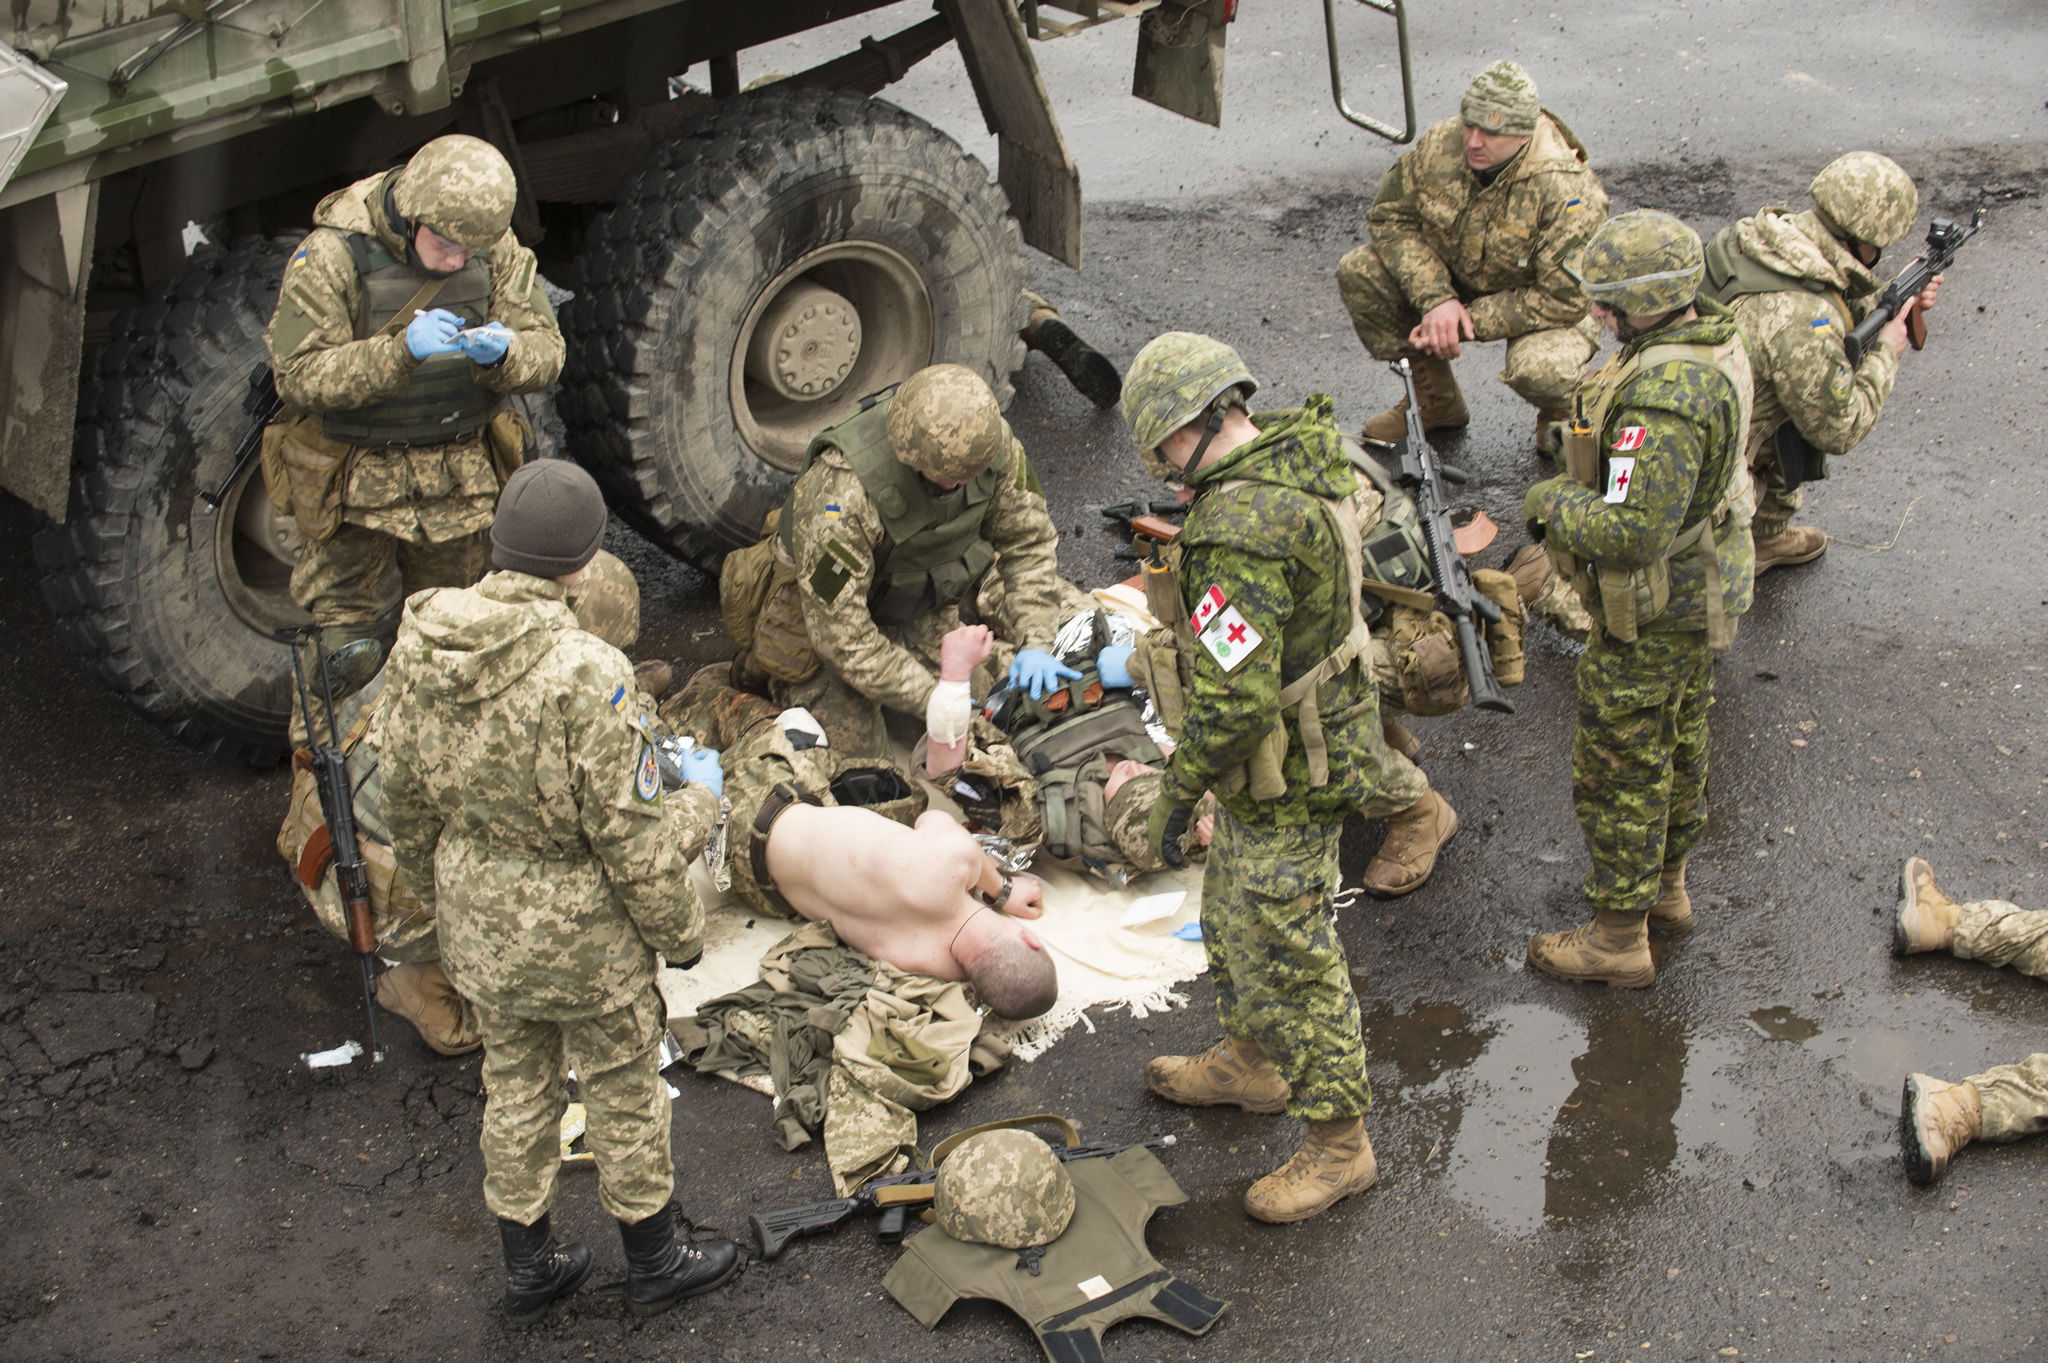 Starychi, Ukraine. 15 March 2016 – Ukrainian Armed Forces members perform combat first aid drills under the supervision of Canadian Armed Forces members during Operation UNIFIER at the International Peacekeeping and Security Centre in Starychi, Ukraine. (Photo: Canadian Forces Combat Camera, DND)